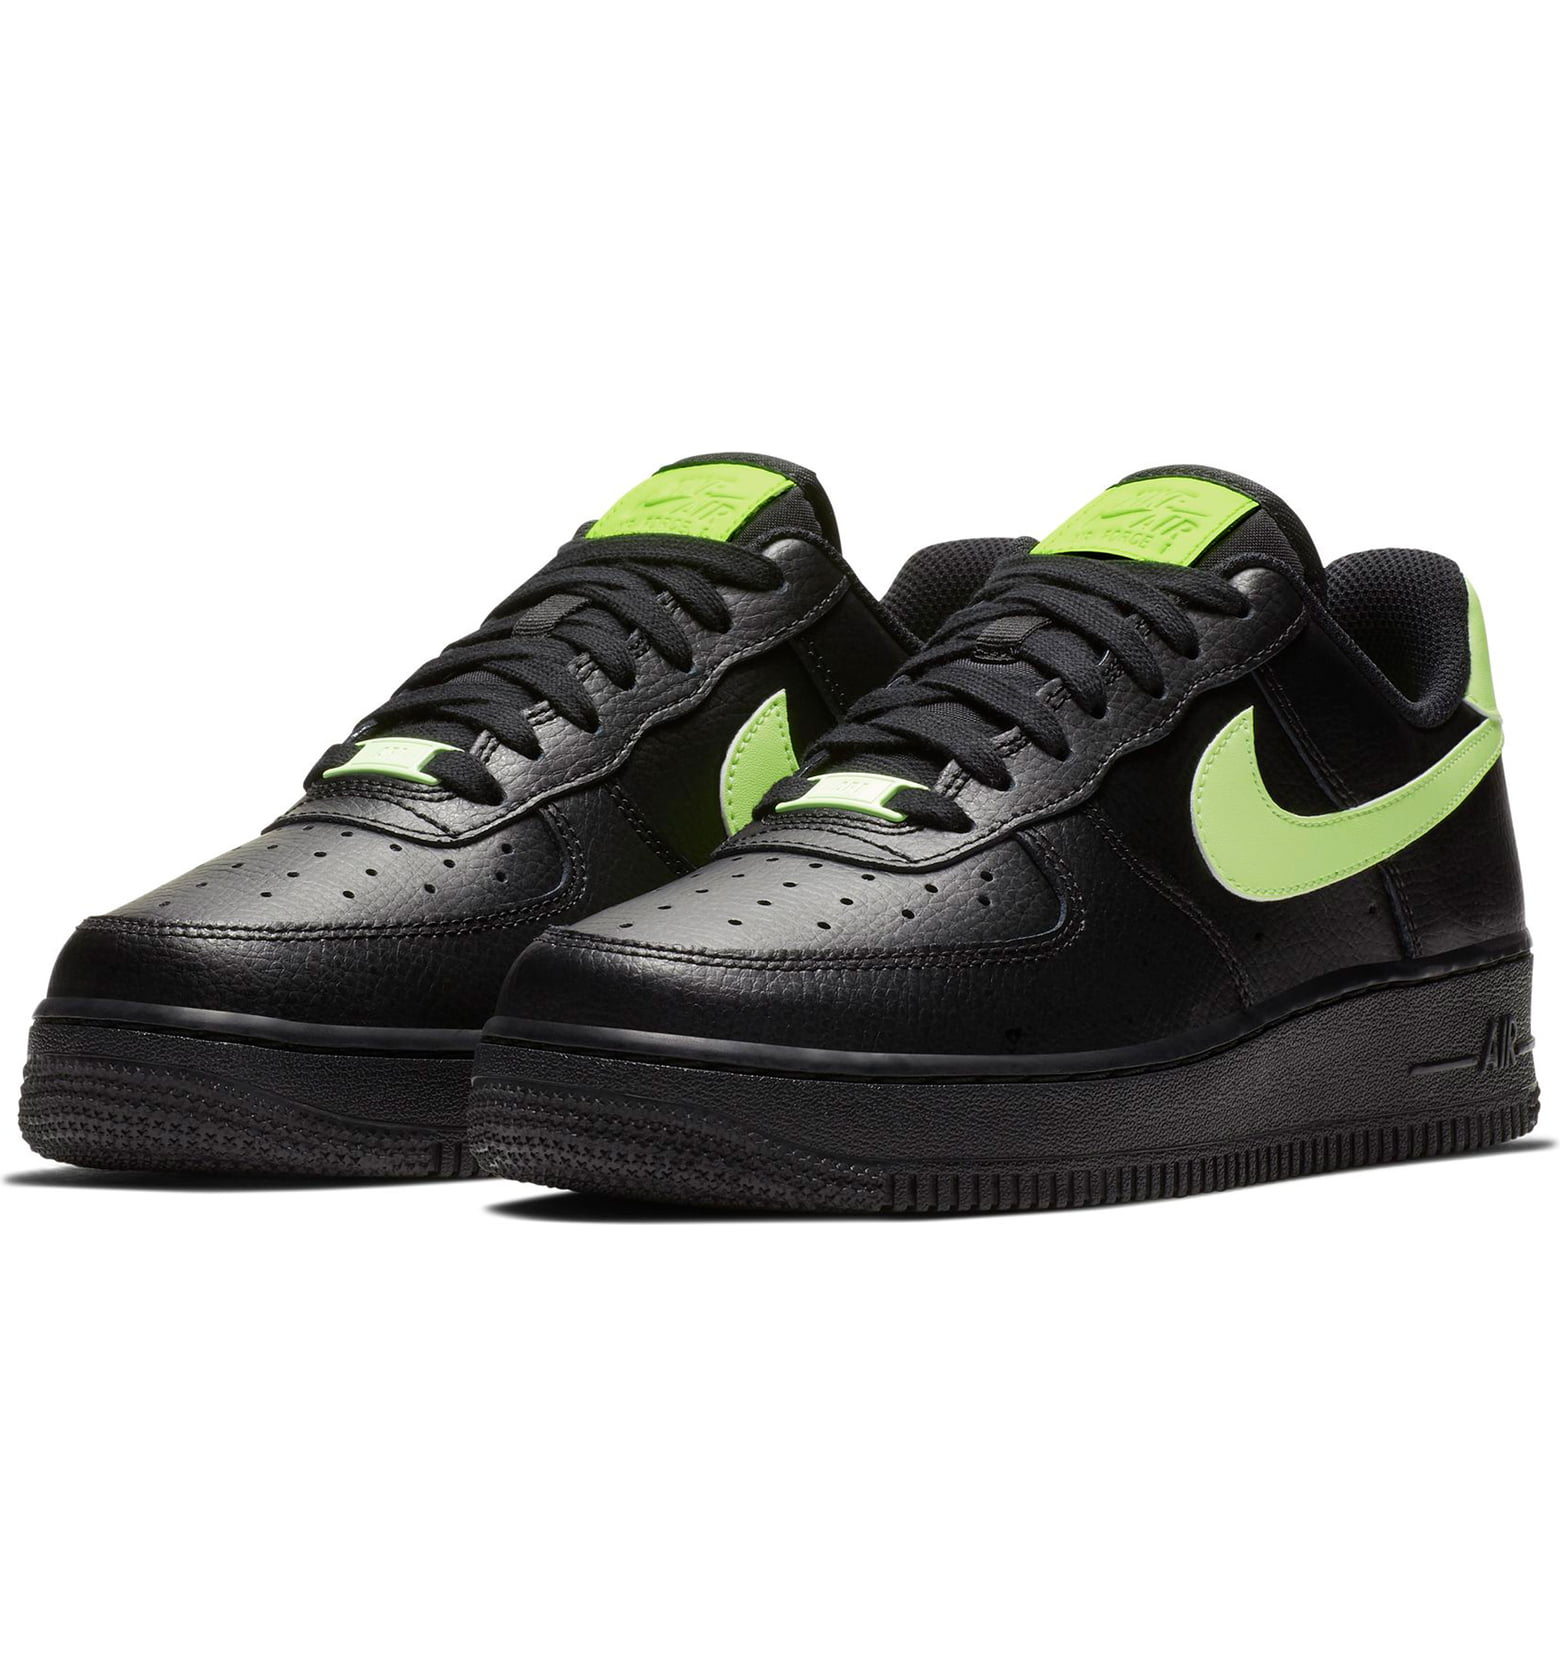 Air Force 1 '07 Sneaker by Nike, available on nordstrom.com Kylie Jenner Shoes Exact Product